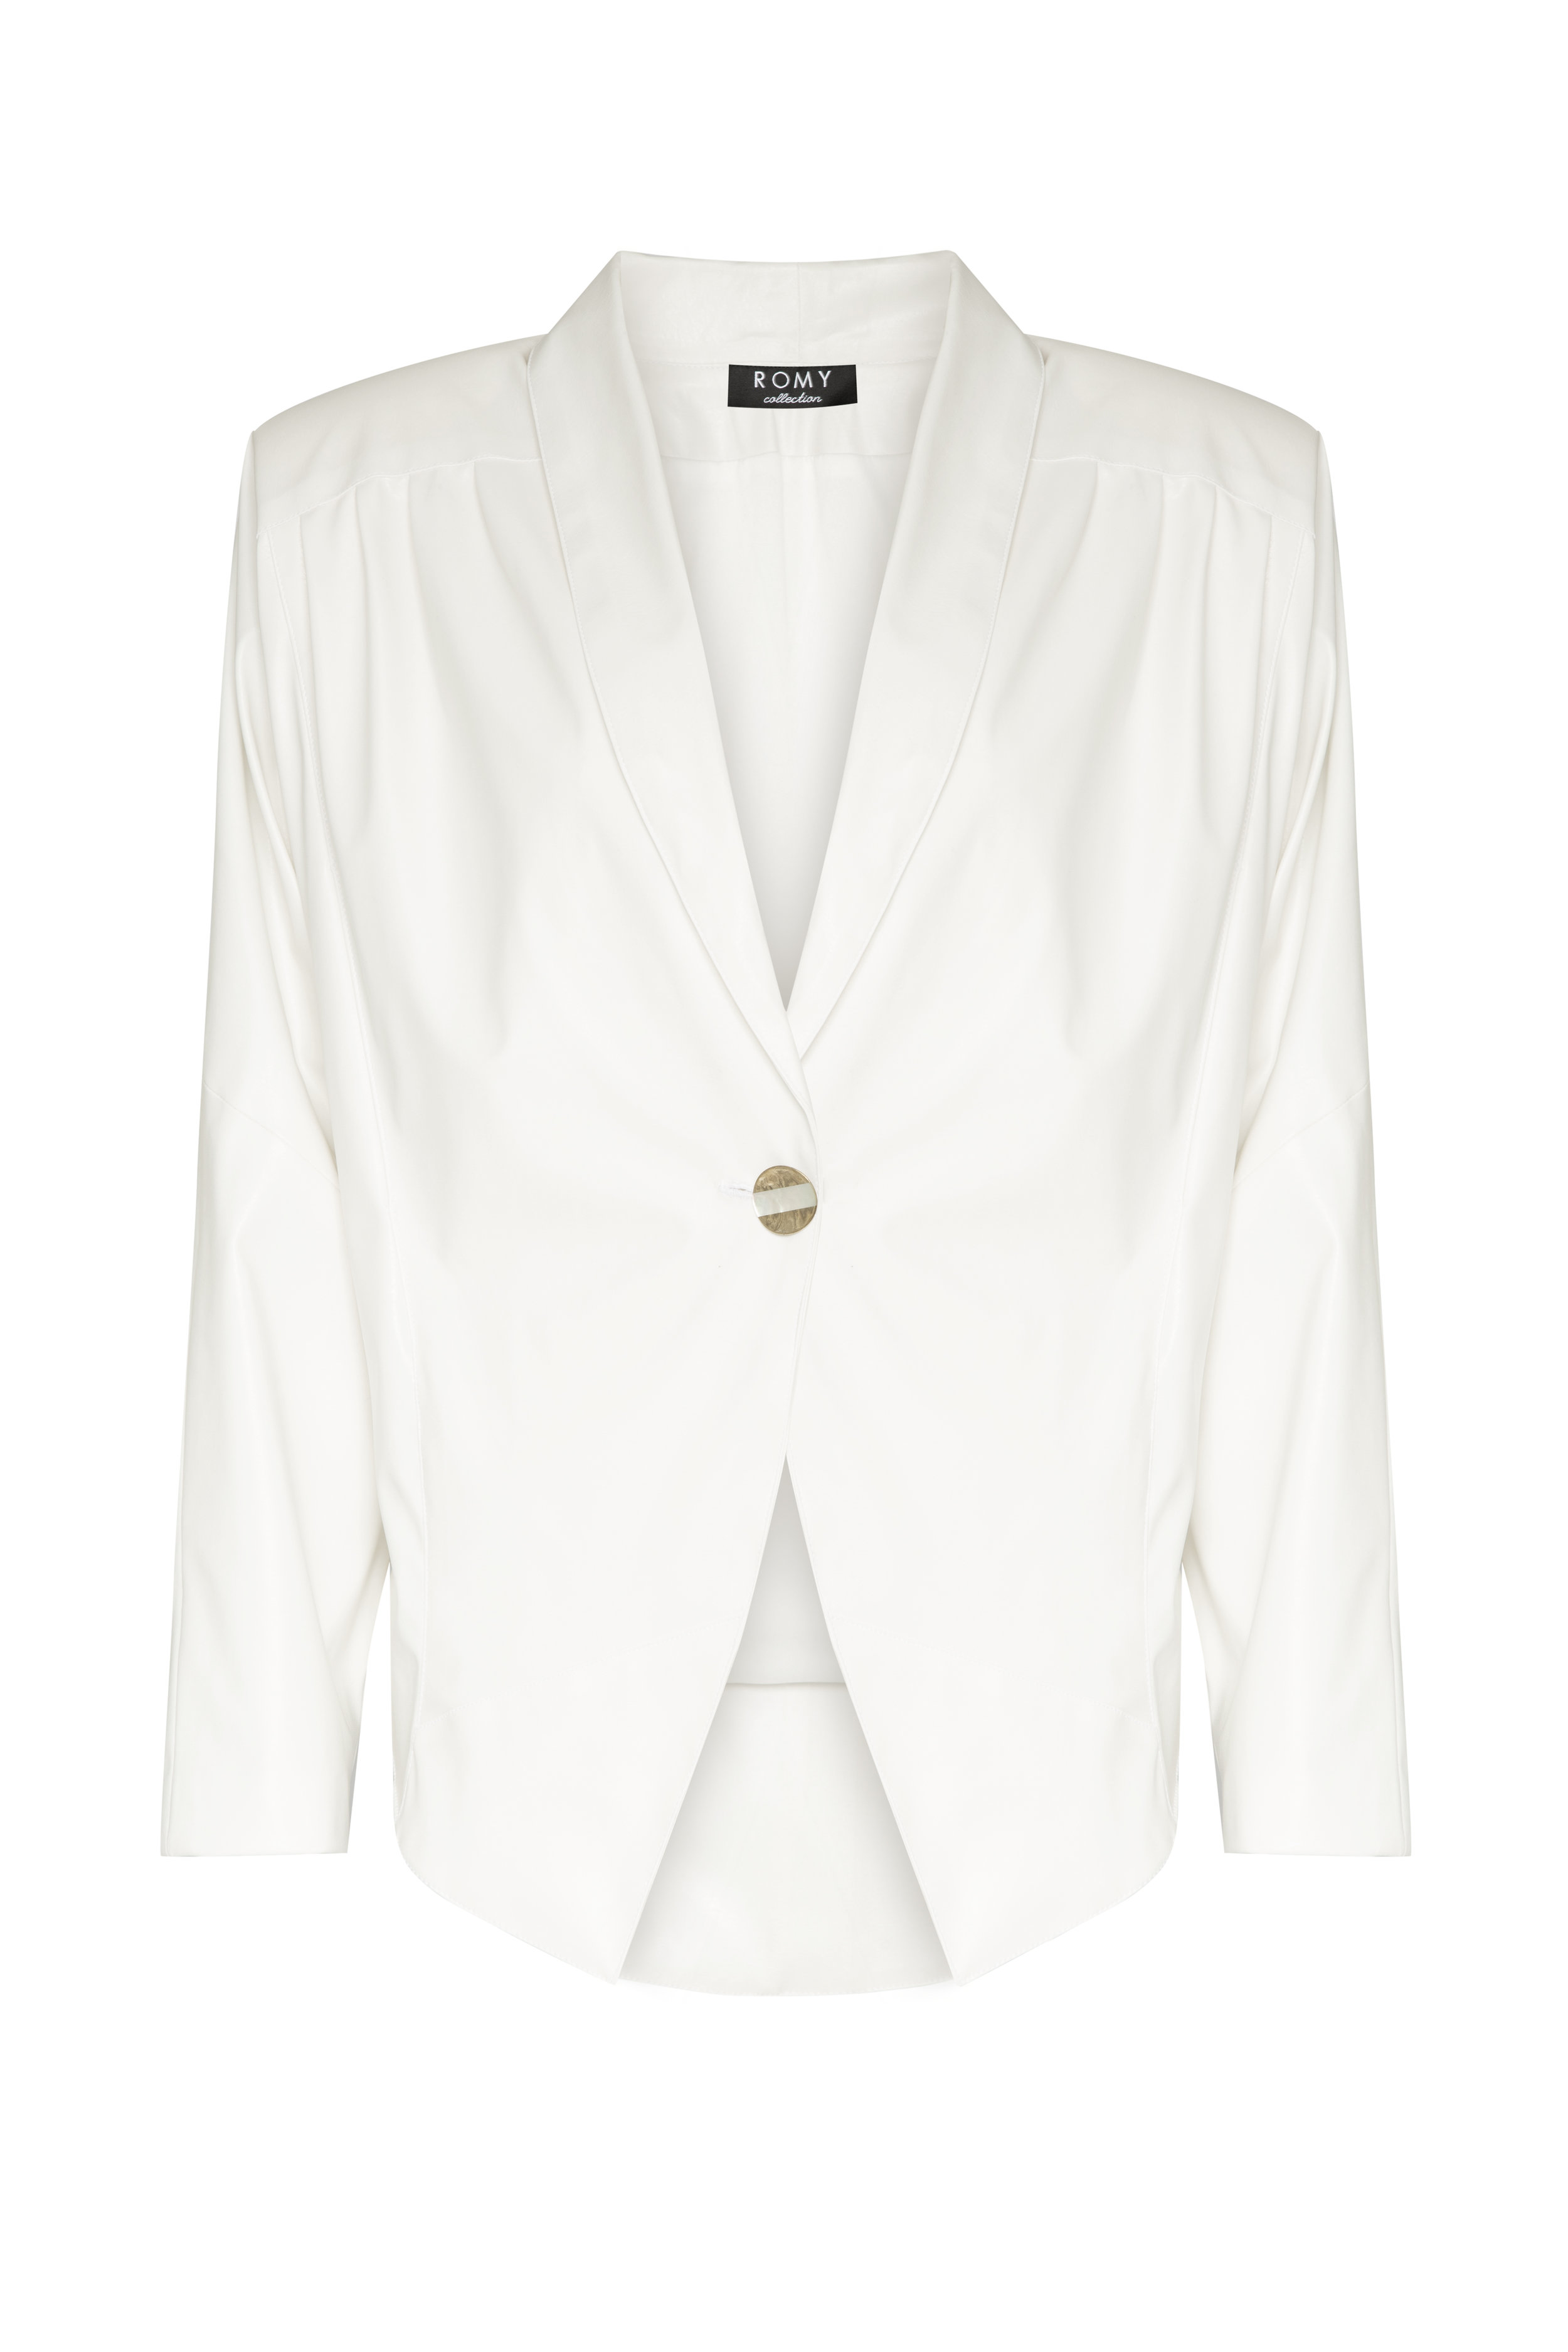 COMPLETE THE LOOK - BABE JACKET 225 USD